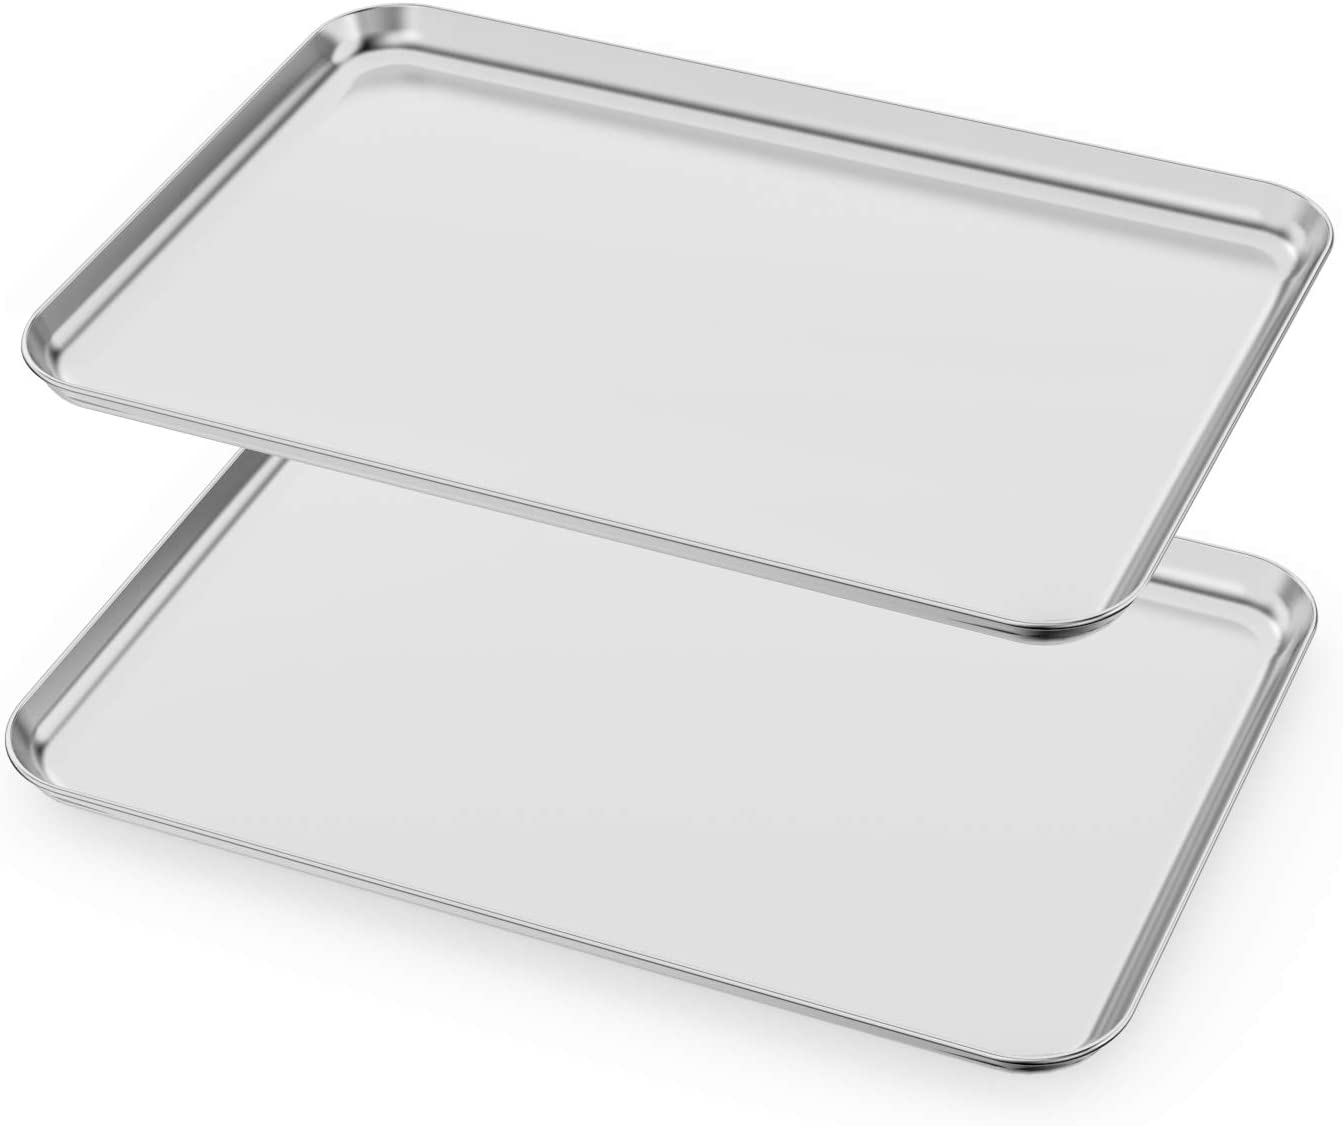 Baking Sheets Set of 2, HKJ Chef Cookie Sheets 2 Pieces & Stainless Steel Baking Pans & Toaster Oven Tray Pans, Rectangle Size 20L x 14W x 1H inch & Non Toxic & Healthy & Easy Clean